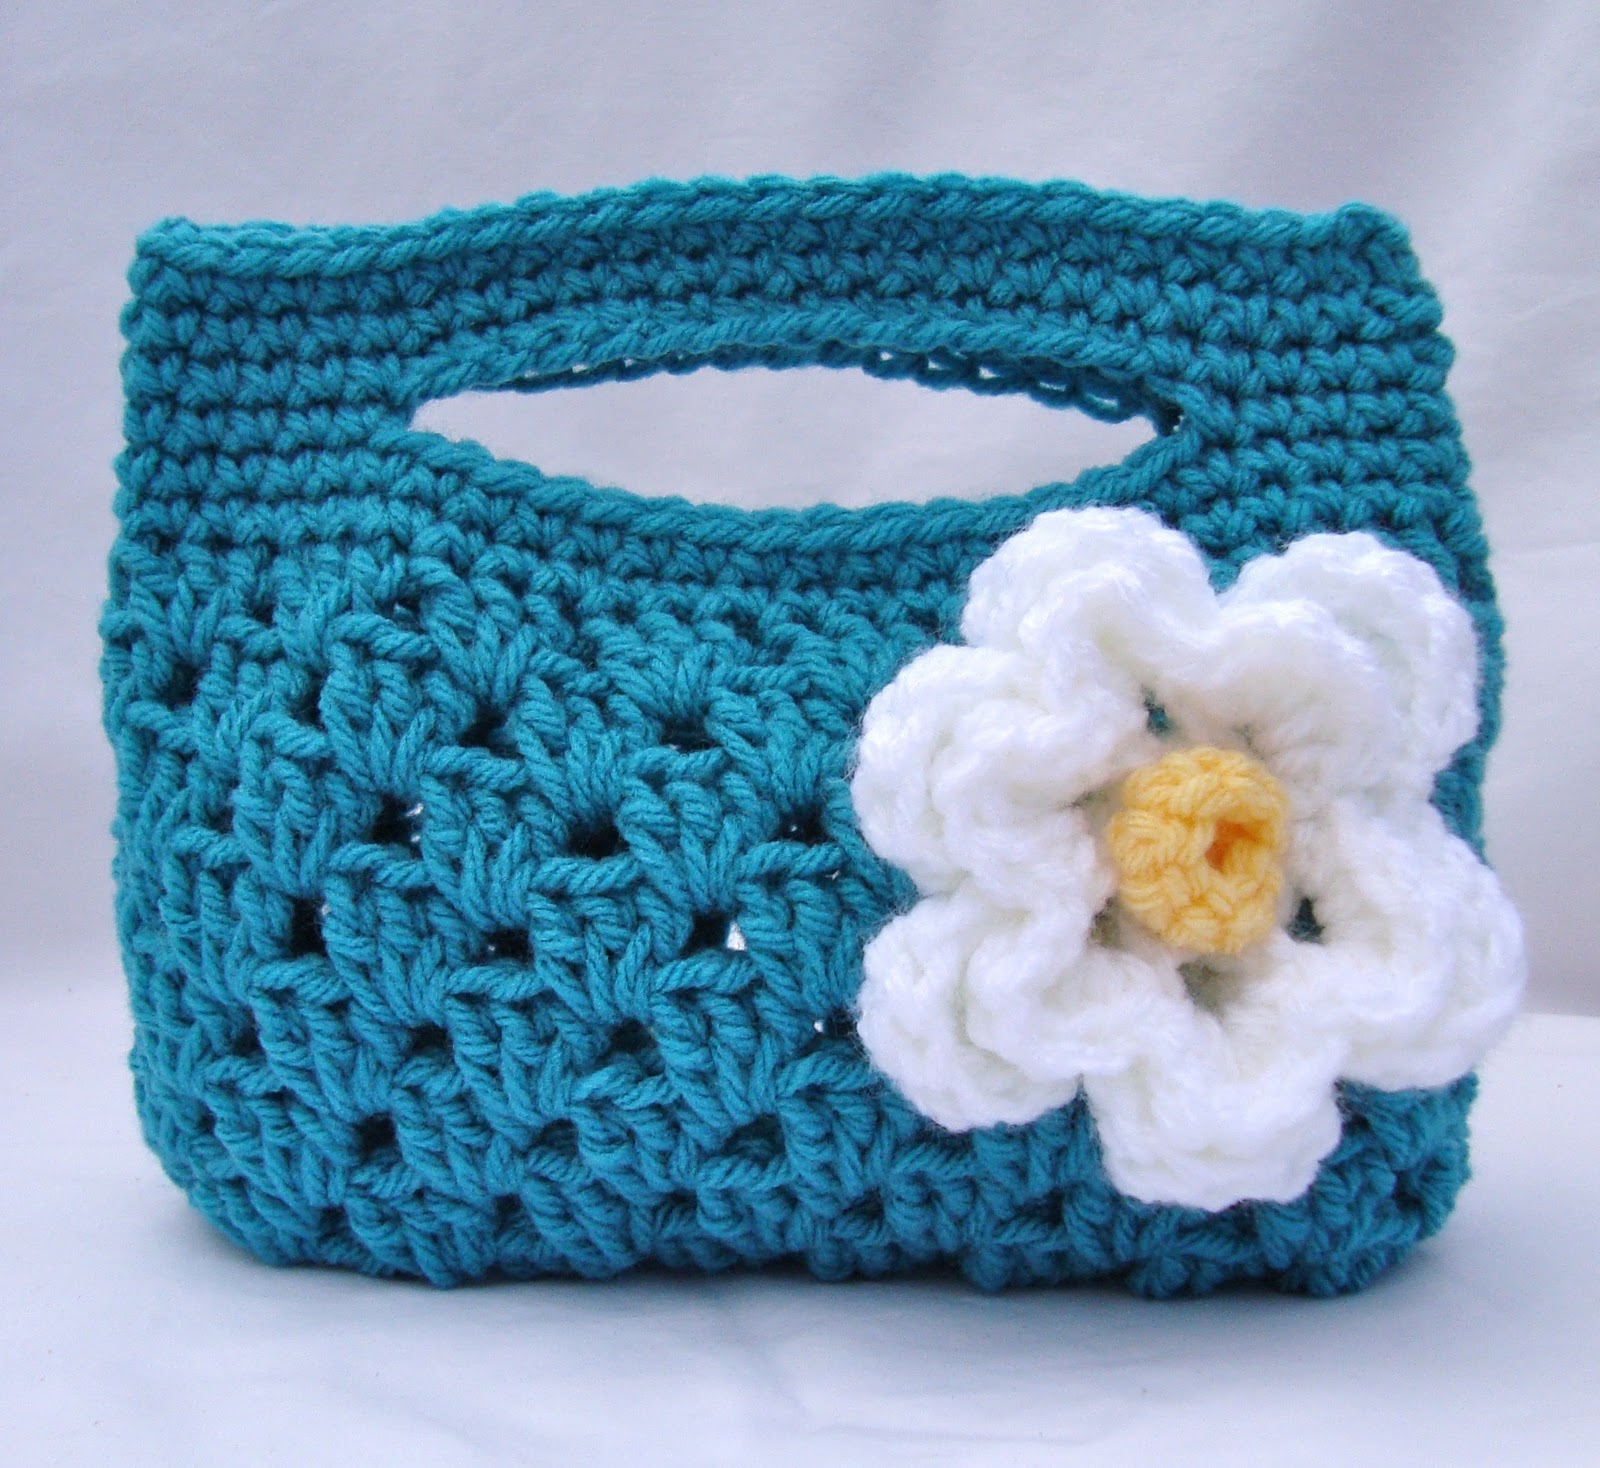 Crochet Bag For Girl : tangled happy: Granny Stripe Boutique Bag